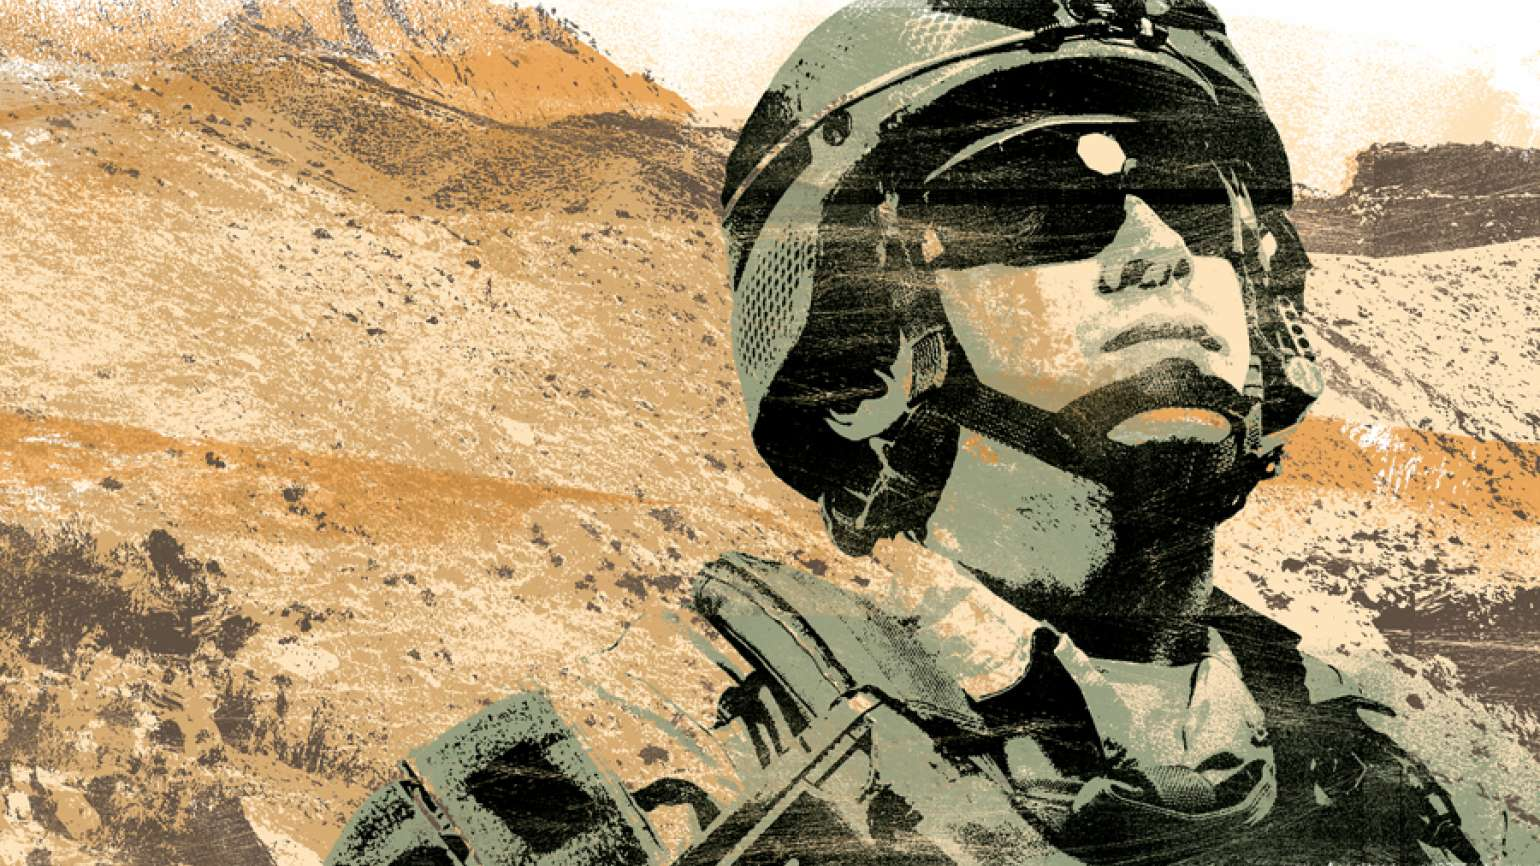 An artist's rendering of a soldier looking heavenward in the desert of Iraq